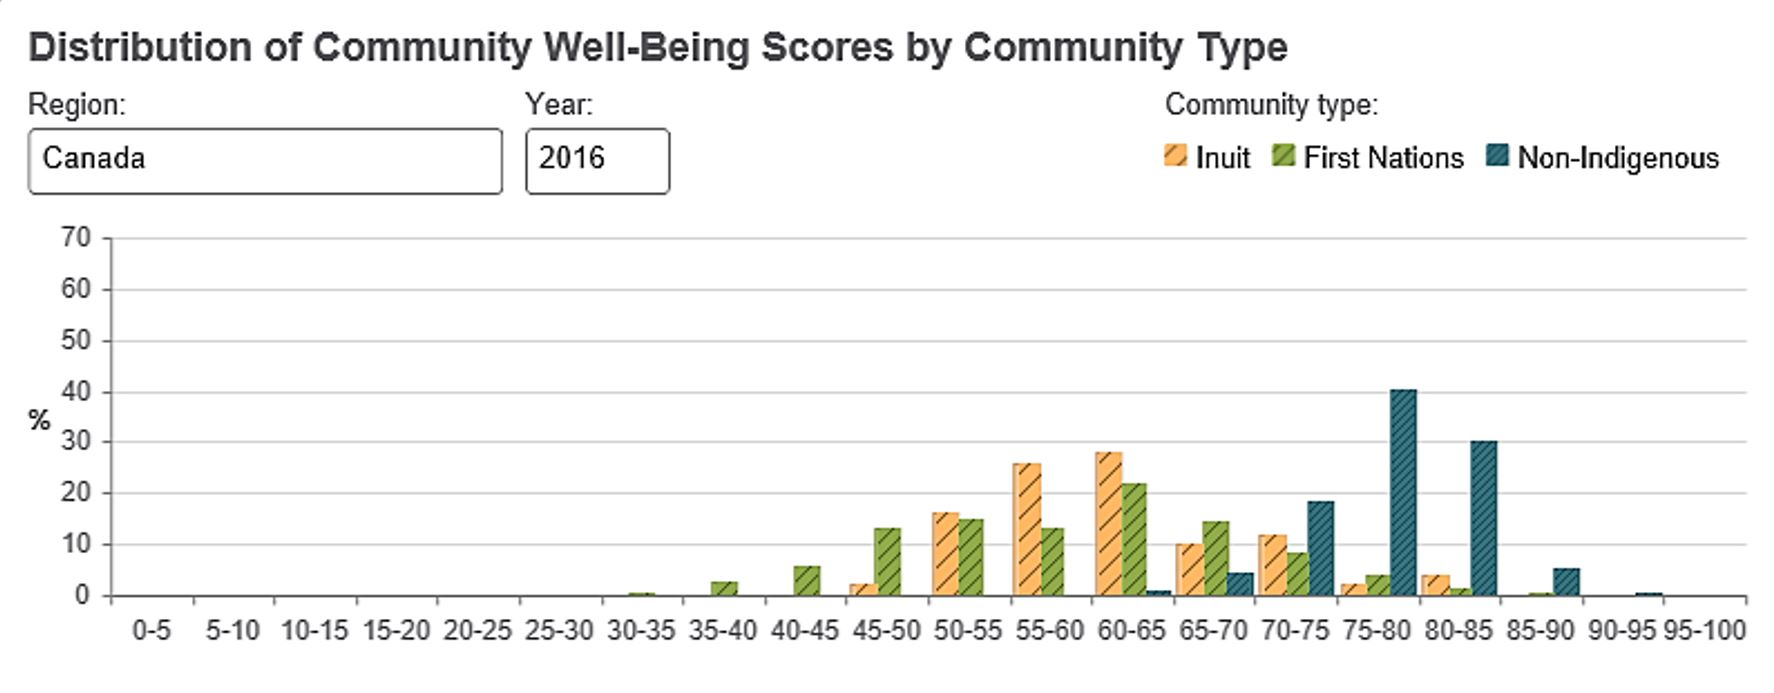 Distribution of Community Well-Being Scores by Community Types